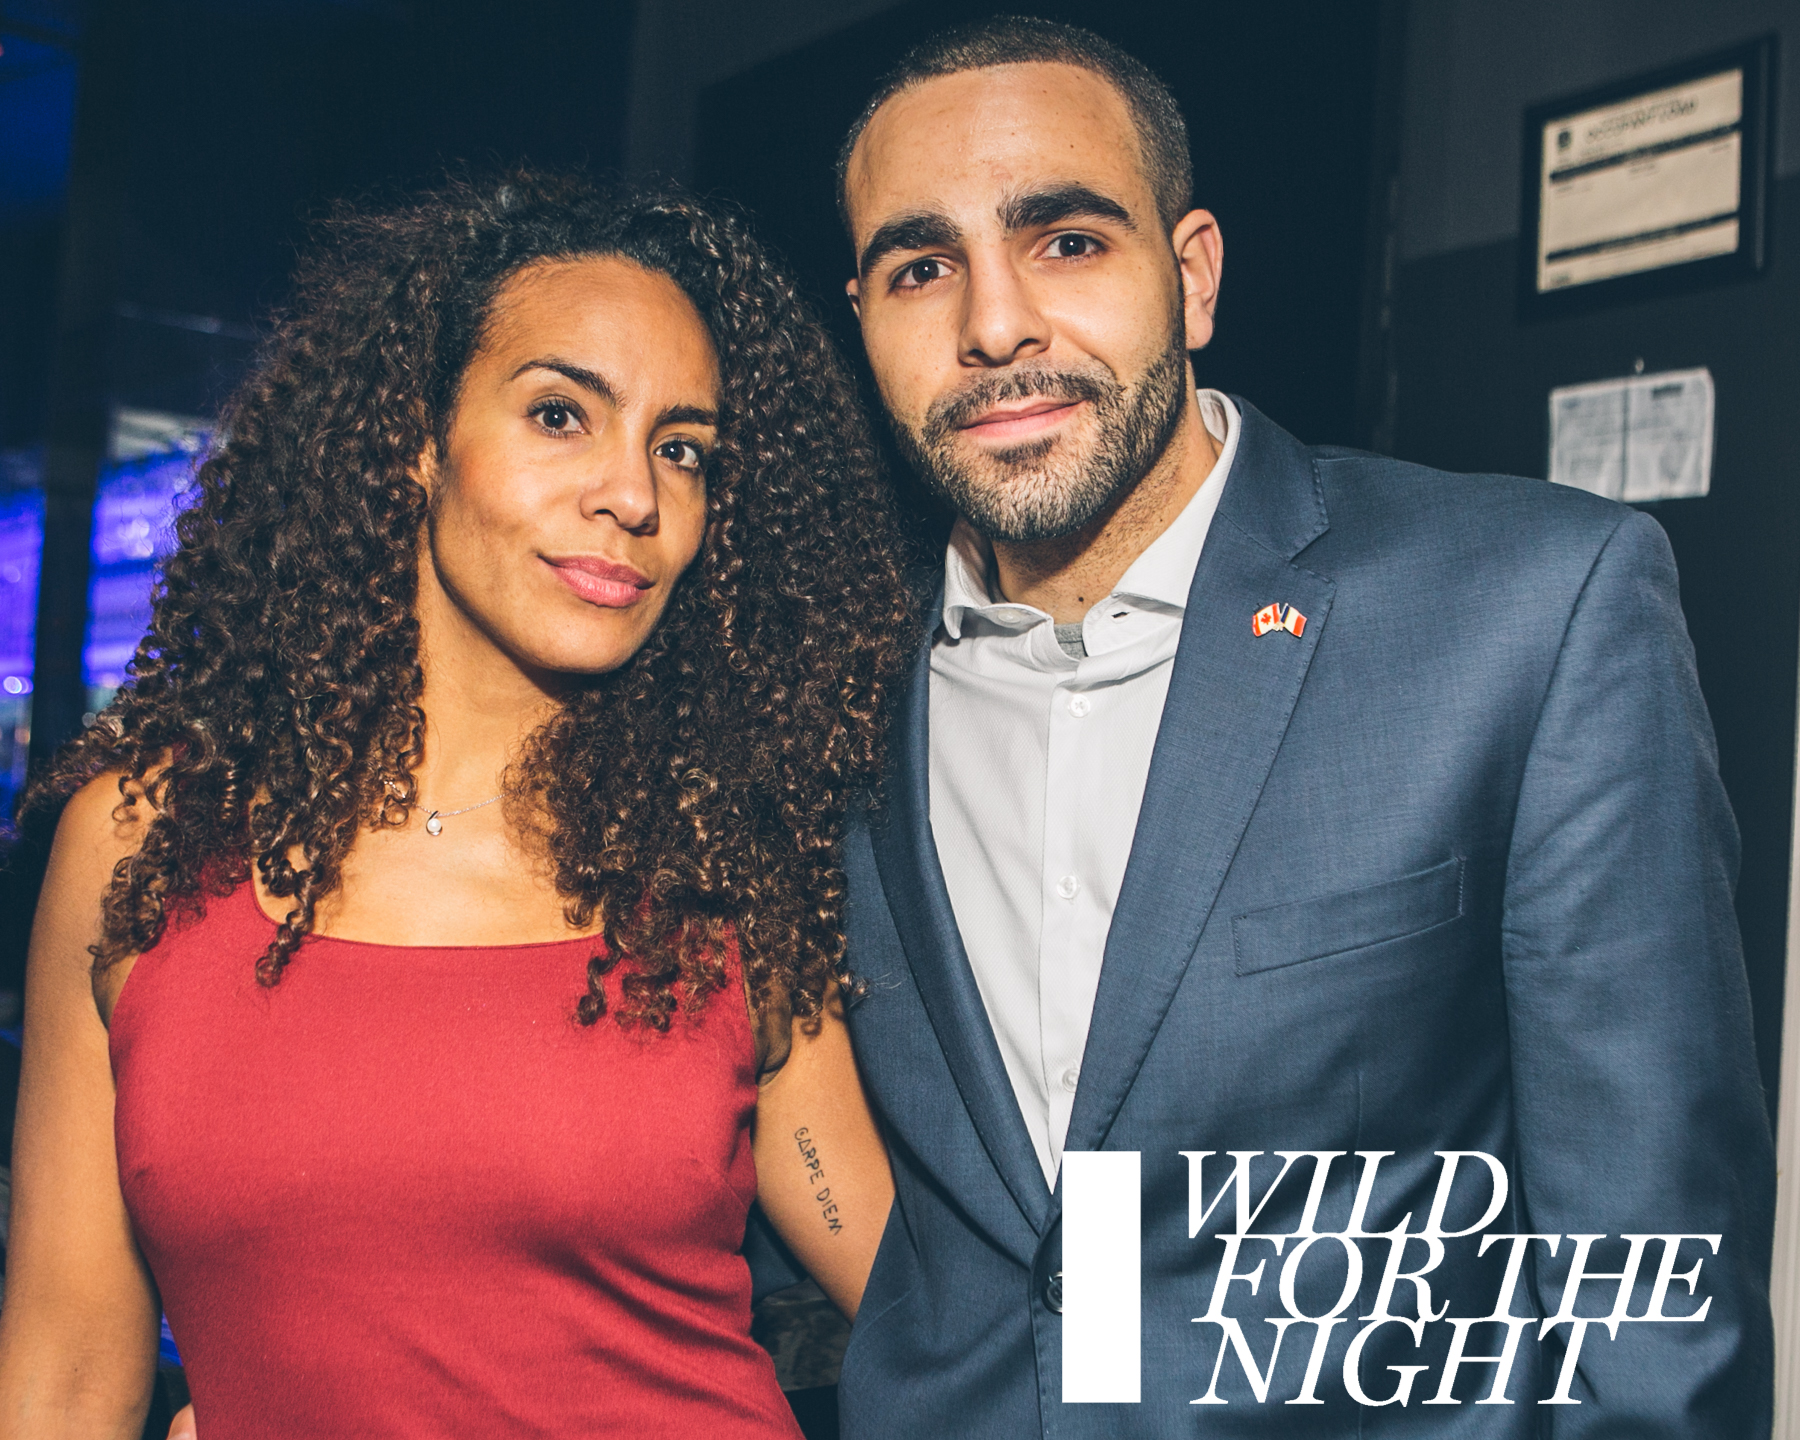 WILD FOR THE NIGHT | Saturday February 13 | Stori